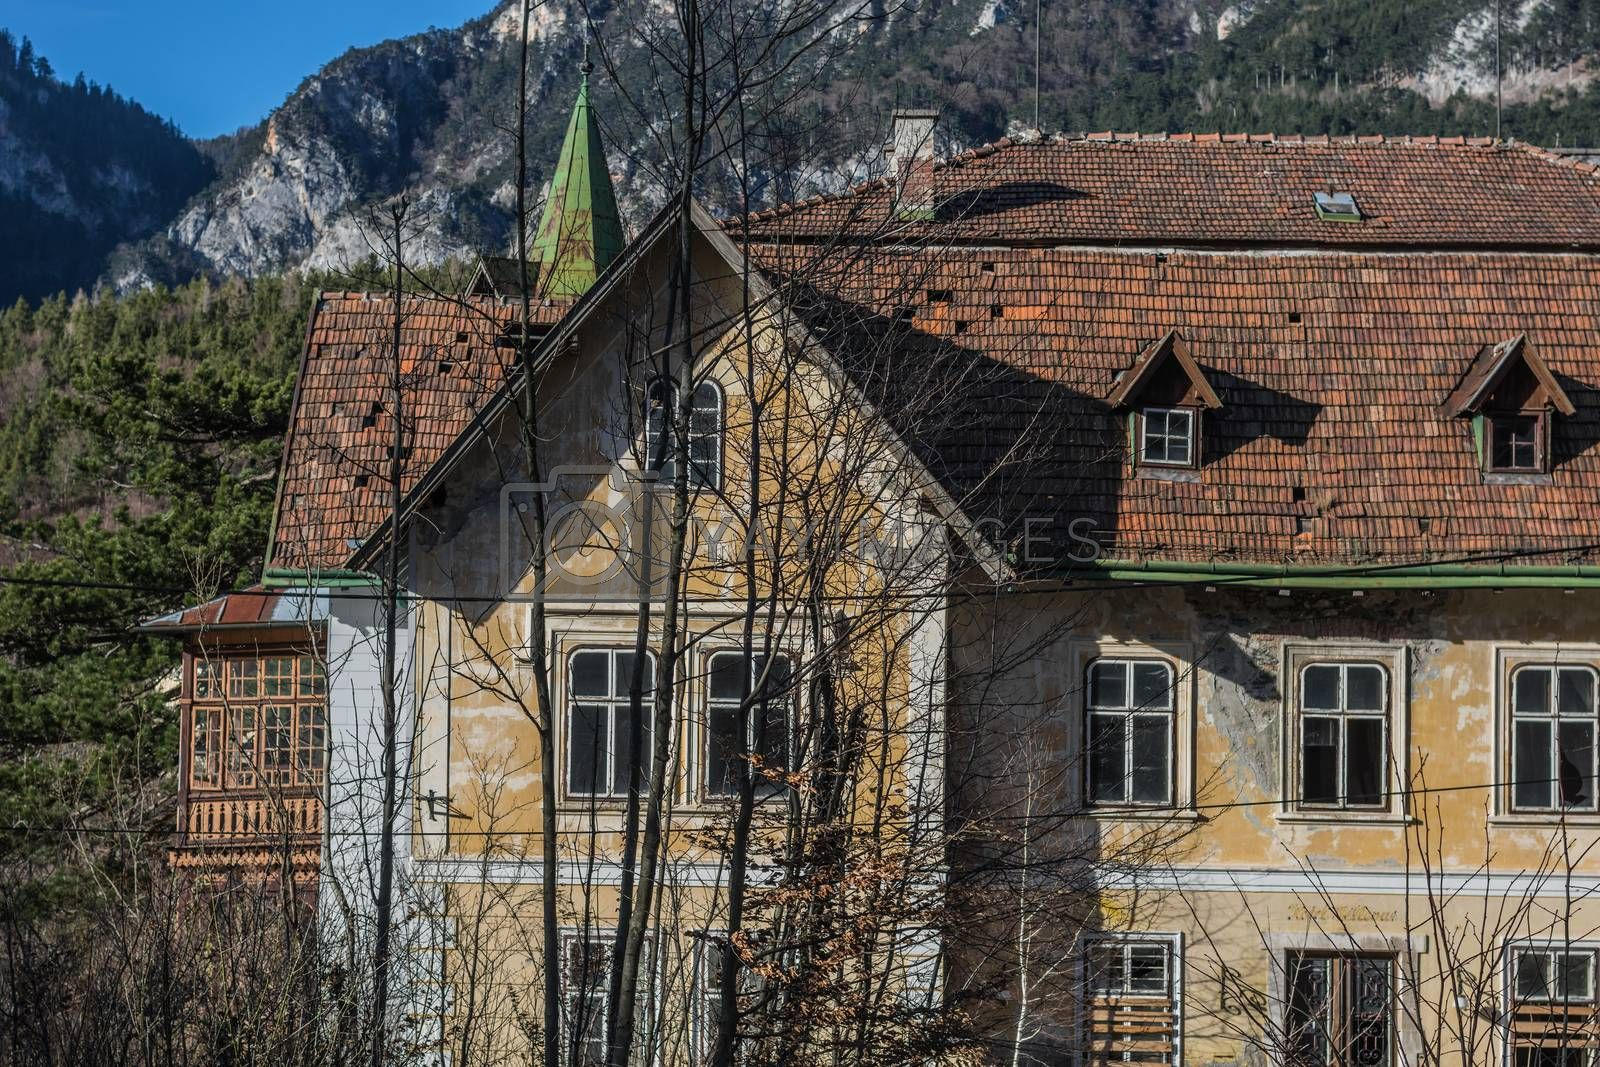 beautiful abandoned building of a hotel in the mountains